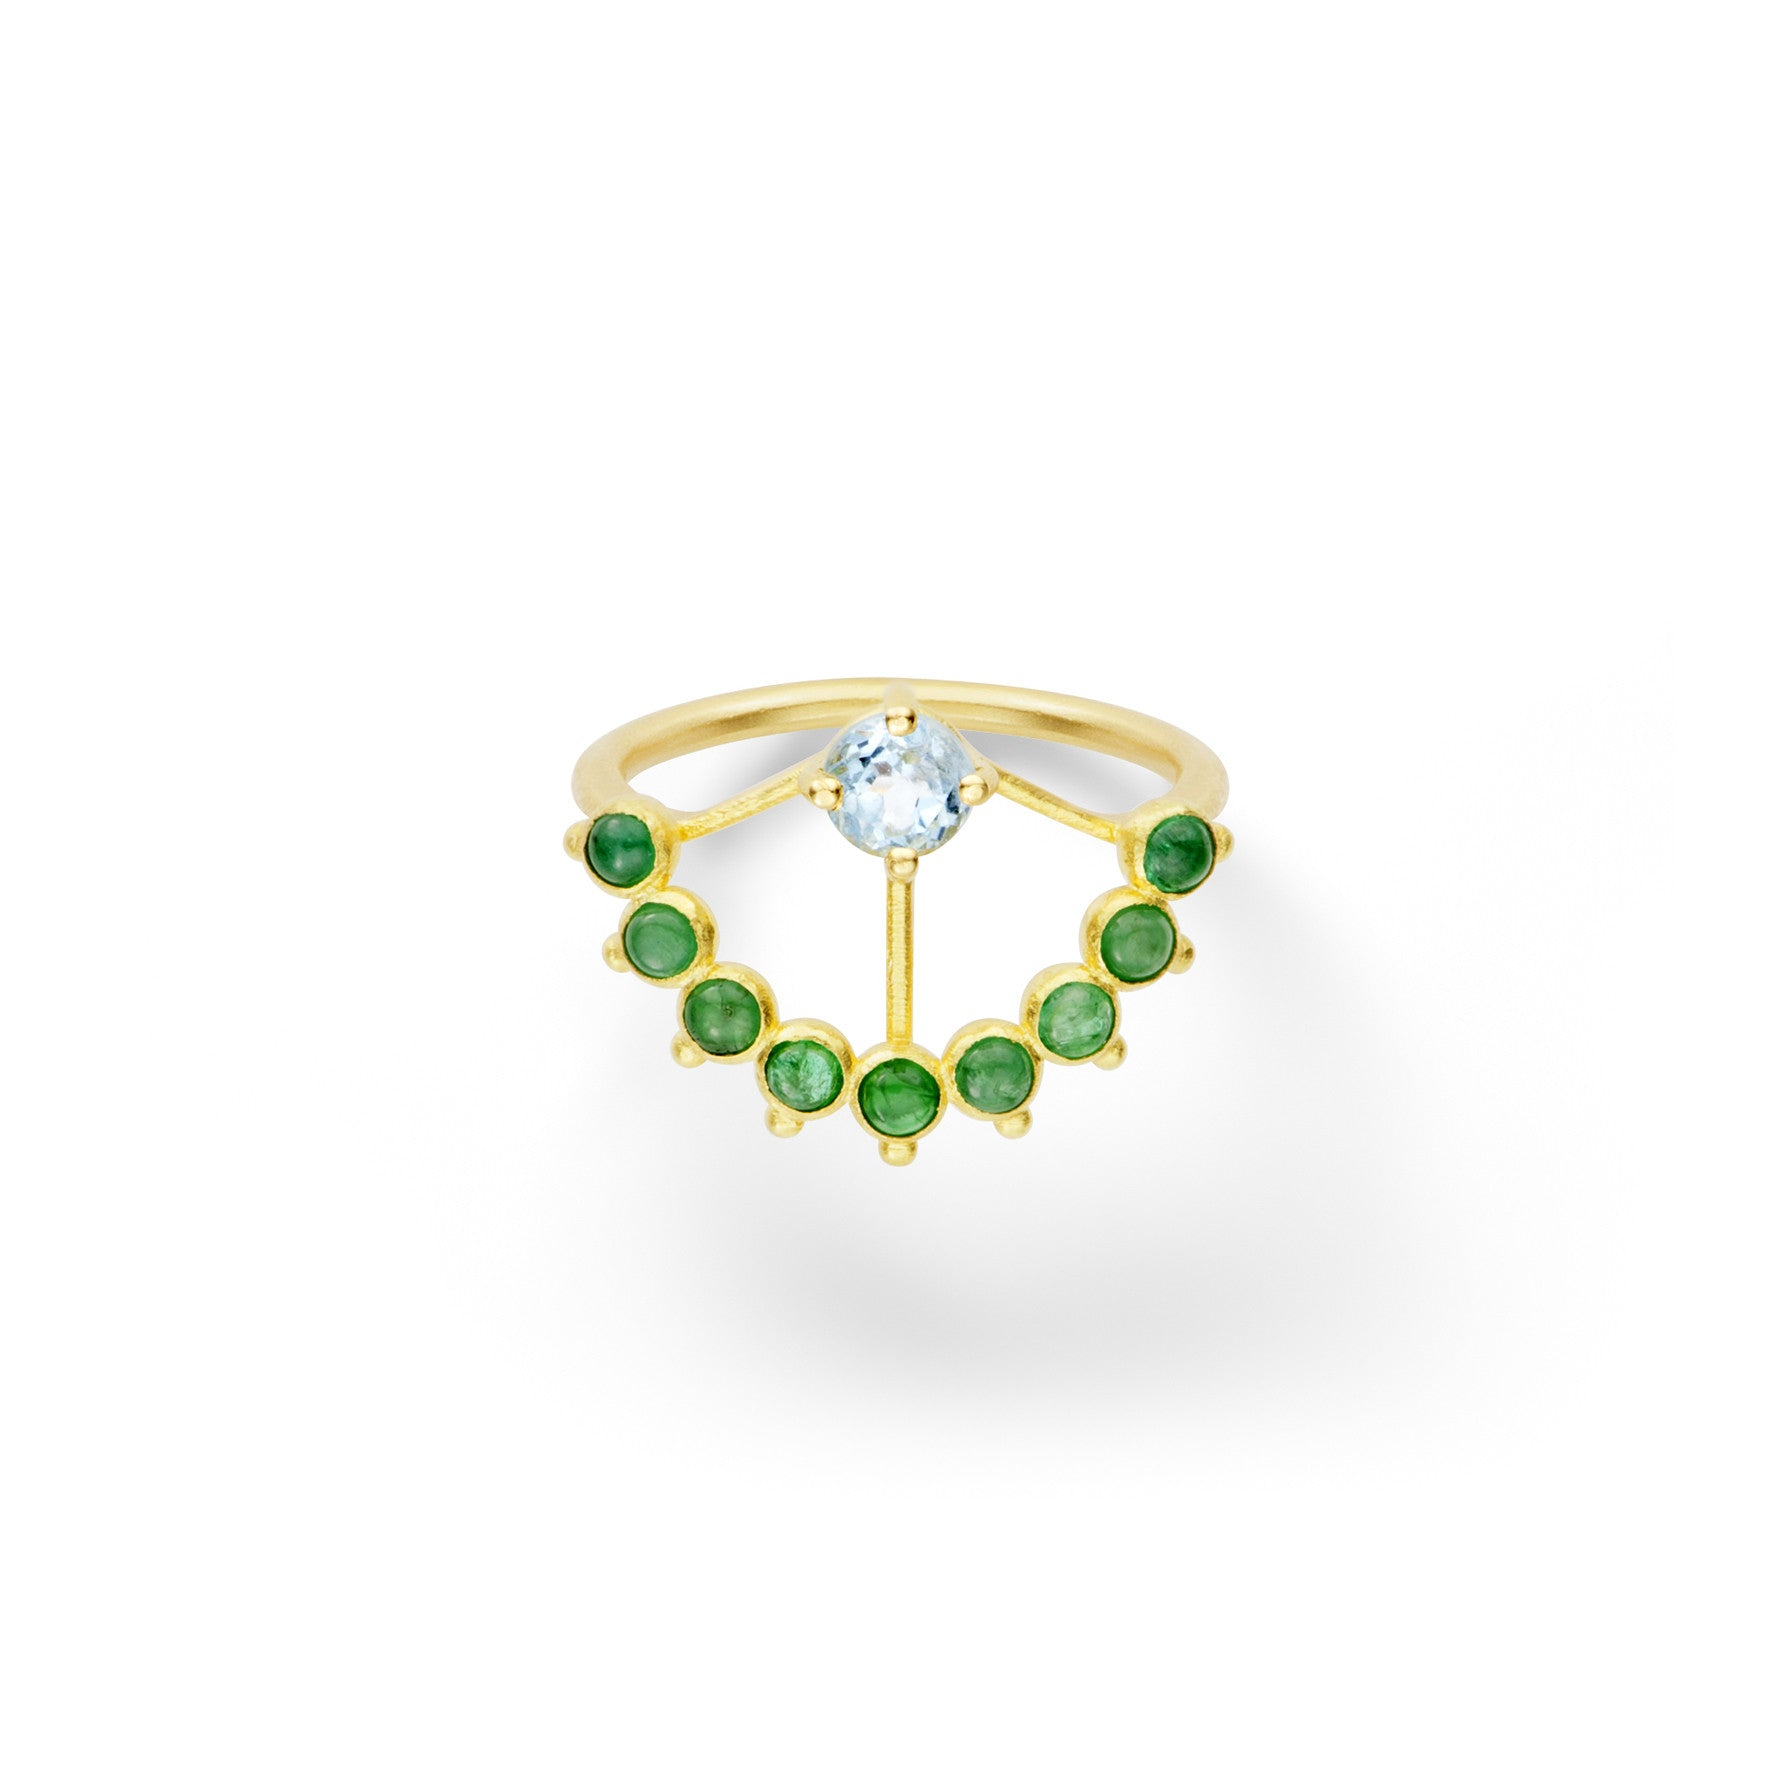 Bague Beija-Flor Or jaune, Aigue-marine et Emeraudes